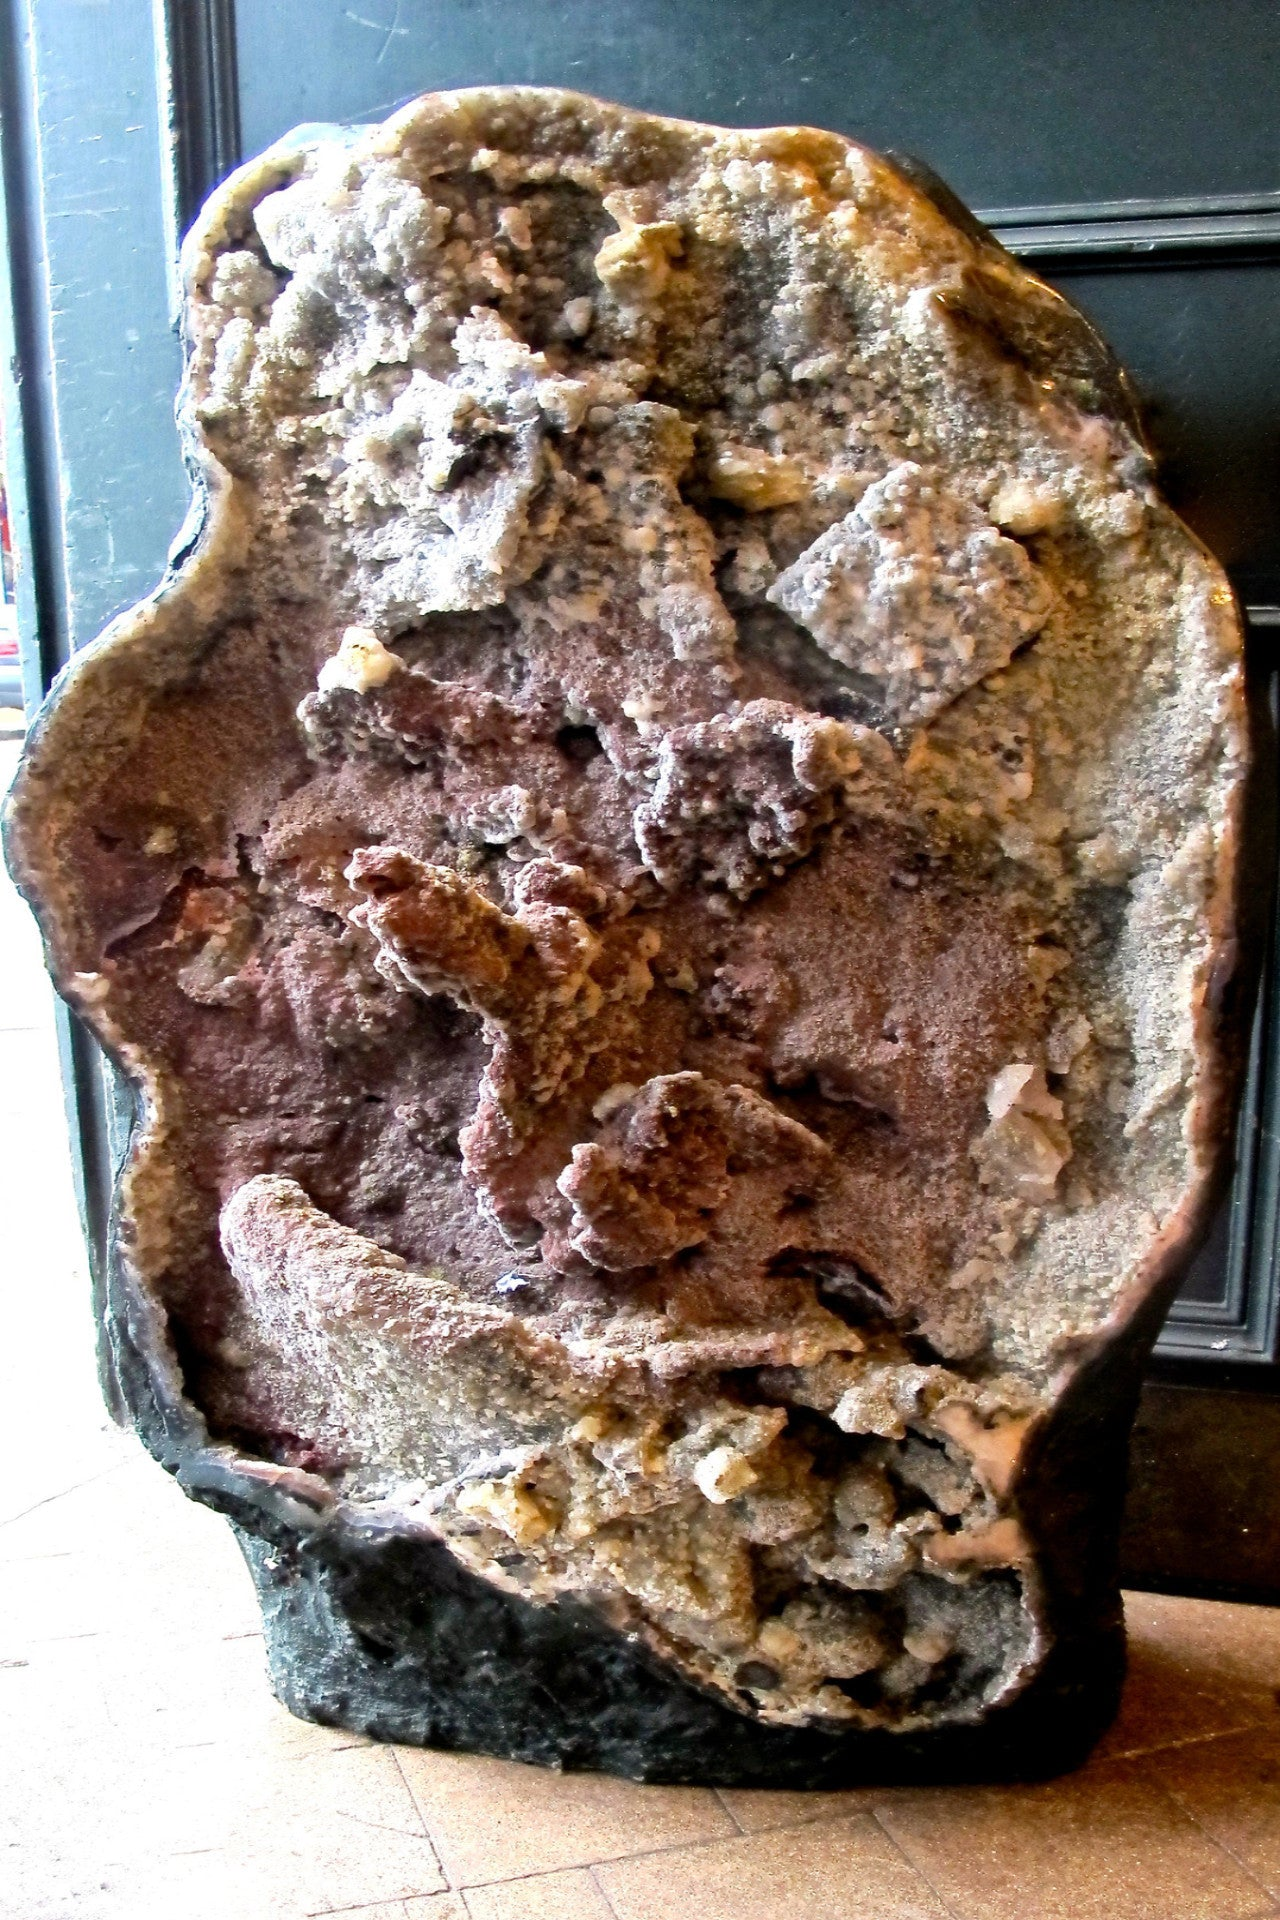 X Very large and rare Brazilian floor standing geode with unpolished formations of amethyst and quartz.